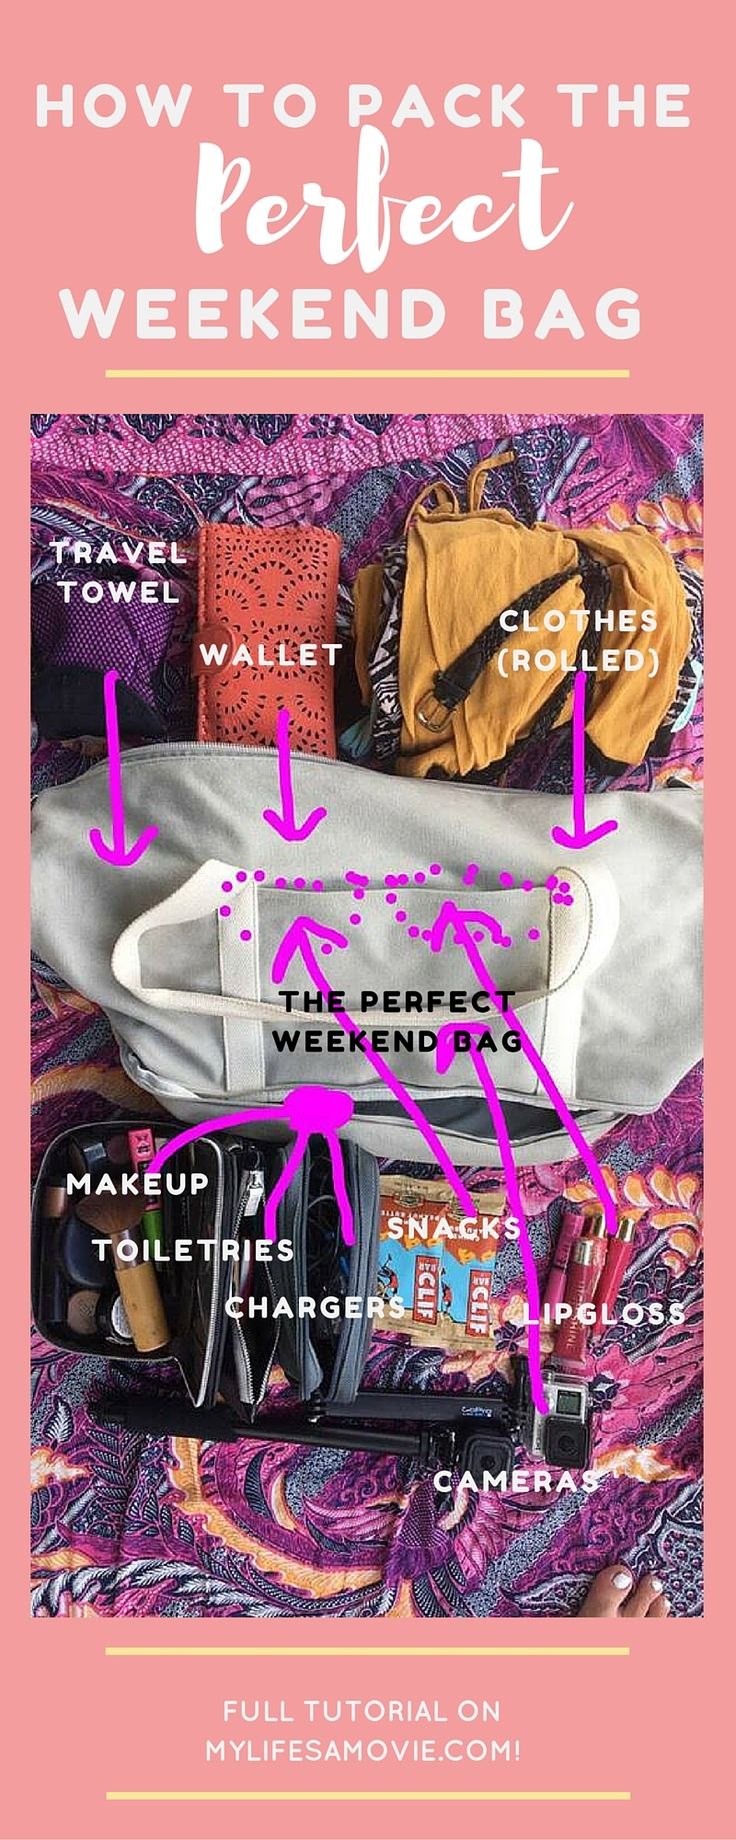 How to Pack the Perfect Weekend Travel Bag! Organization, minimizing, and essentials are key!